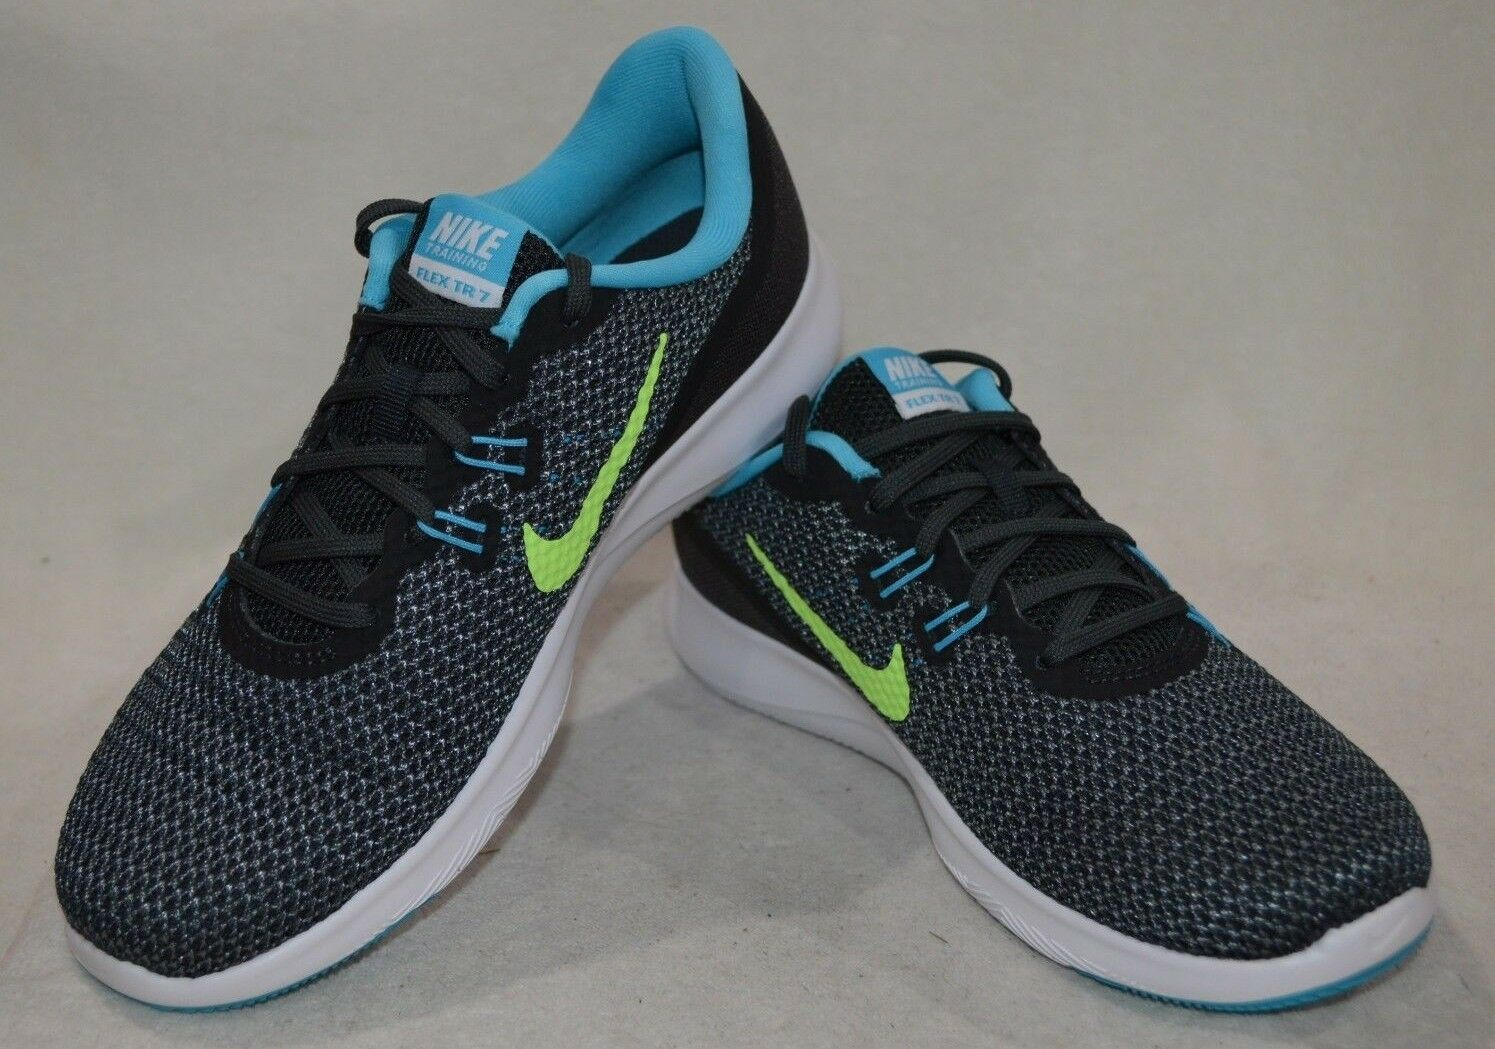 Nike Flex Trainer 7 Anthacite/Green Women's Cross-Trainers Shoes-Asst Sizes NWB